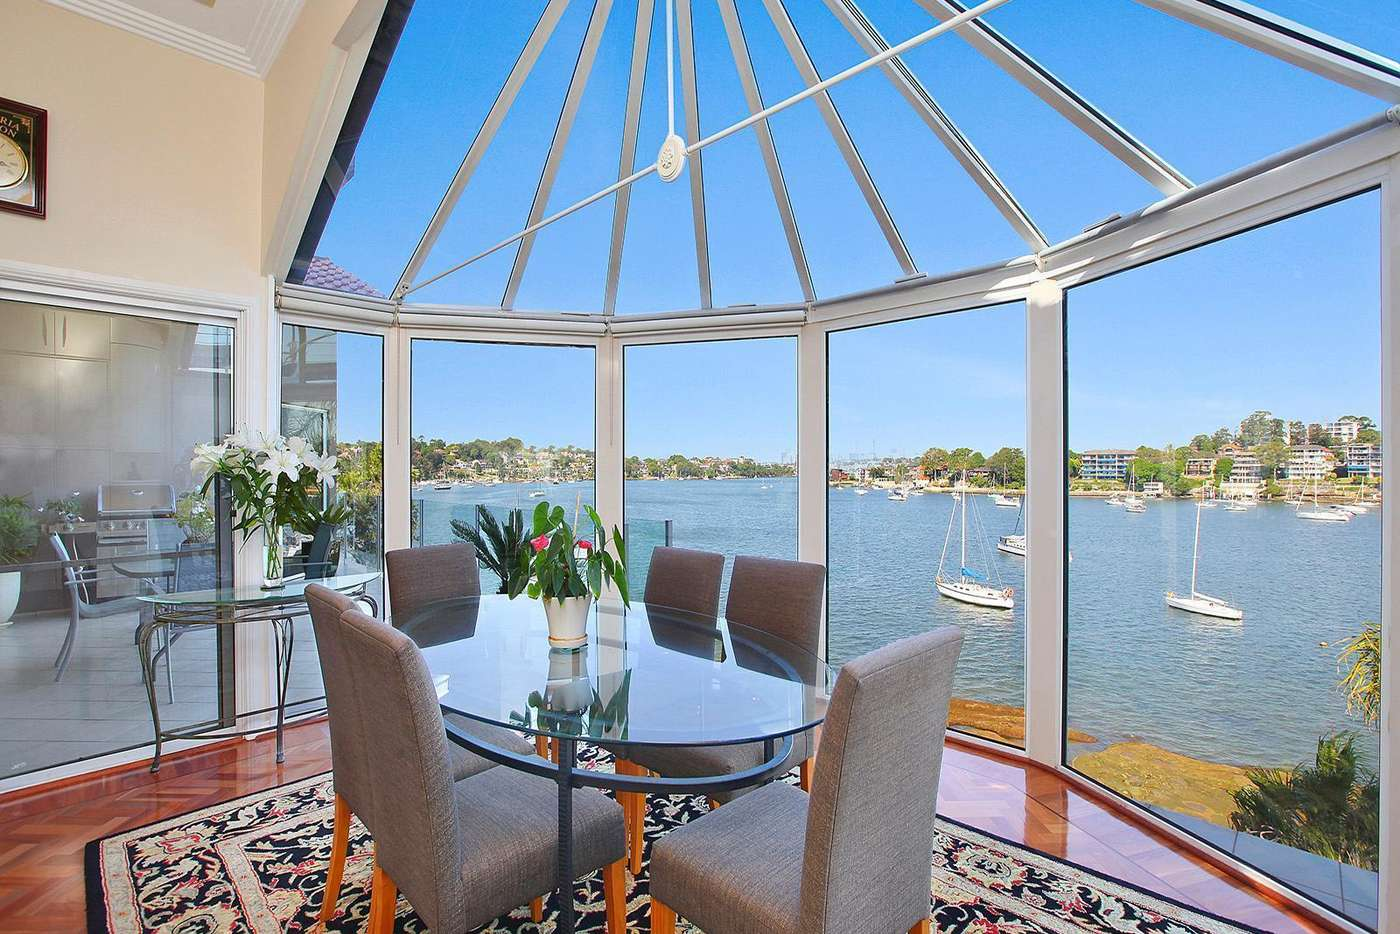 Main view of Homely house listing, 41 Huntleys Point Road, Huntleys Point NSW 2111